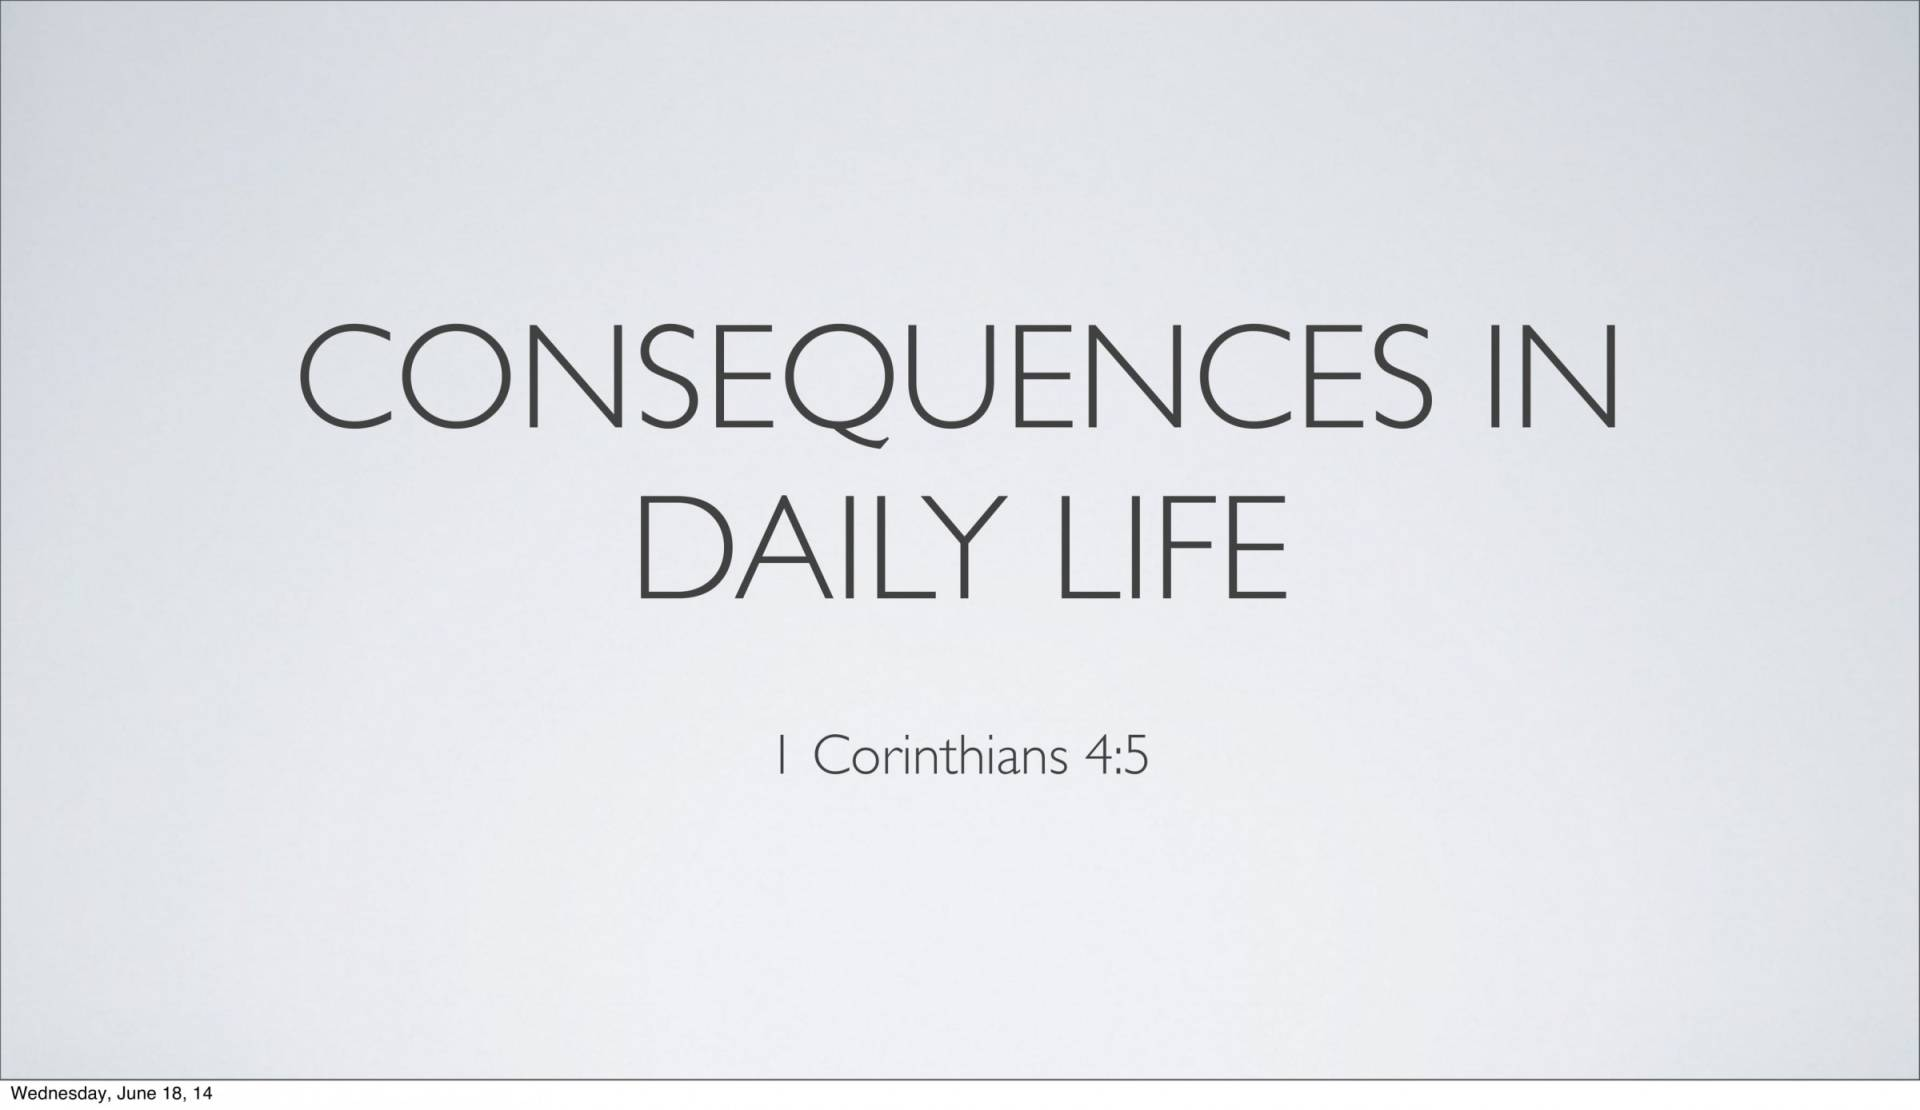 BC&D-14 - Lesson 5-1 - The Inescapable Consequences Of Sin-15